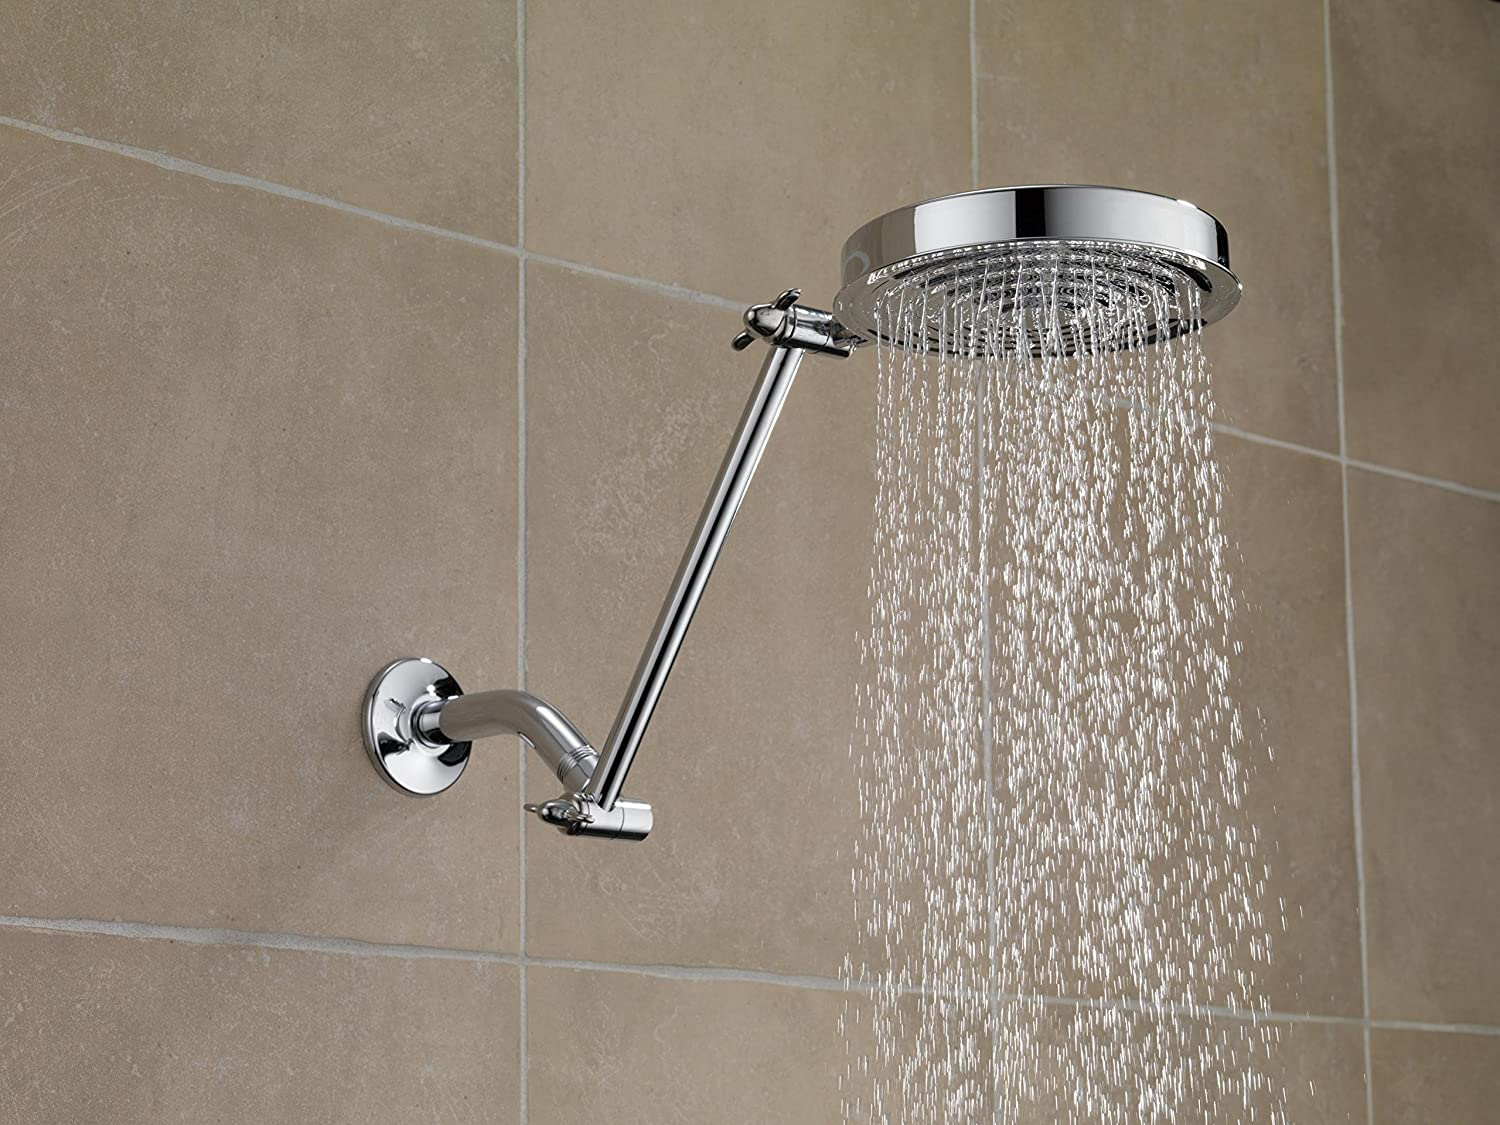 Delta Faucet UA902-PK 10-inch Adjustable Shower Arm, Chrome - Shower ...